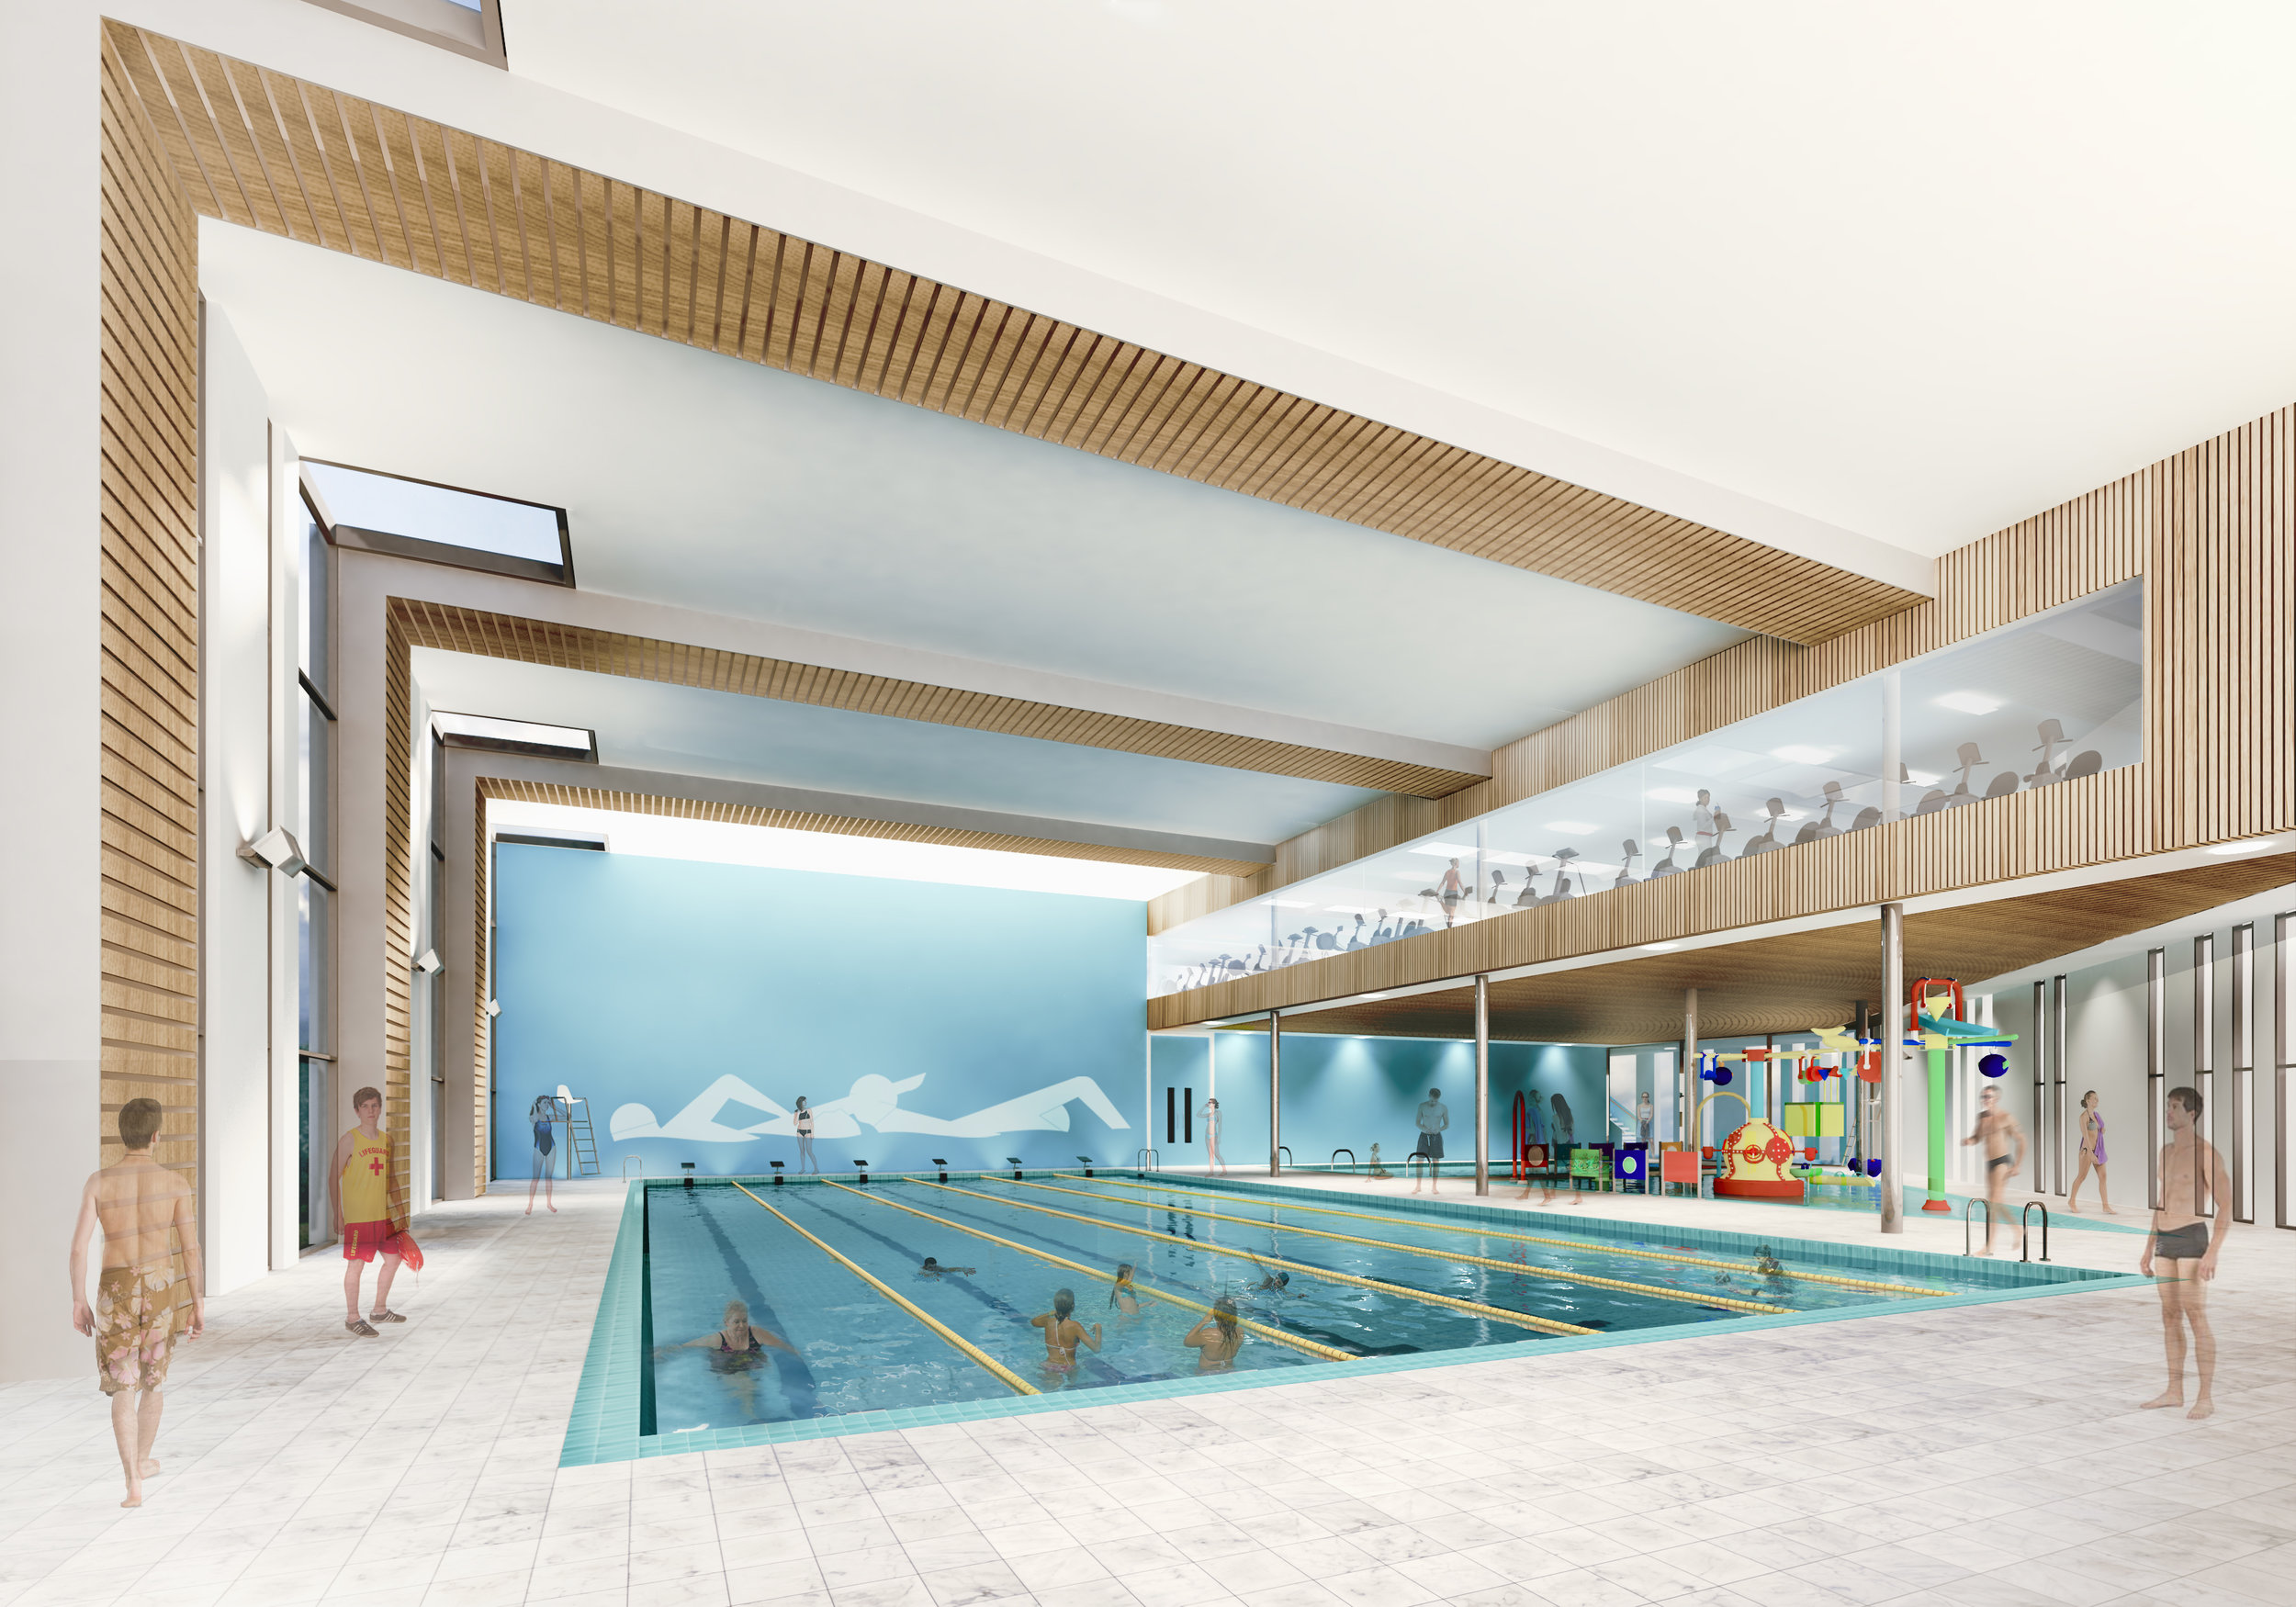 o1114 3041 York Stadium SWIMMING POOL1.jpg